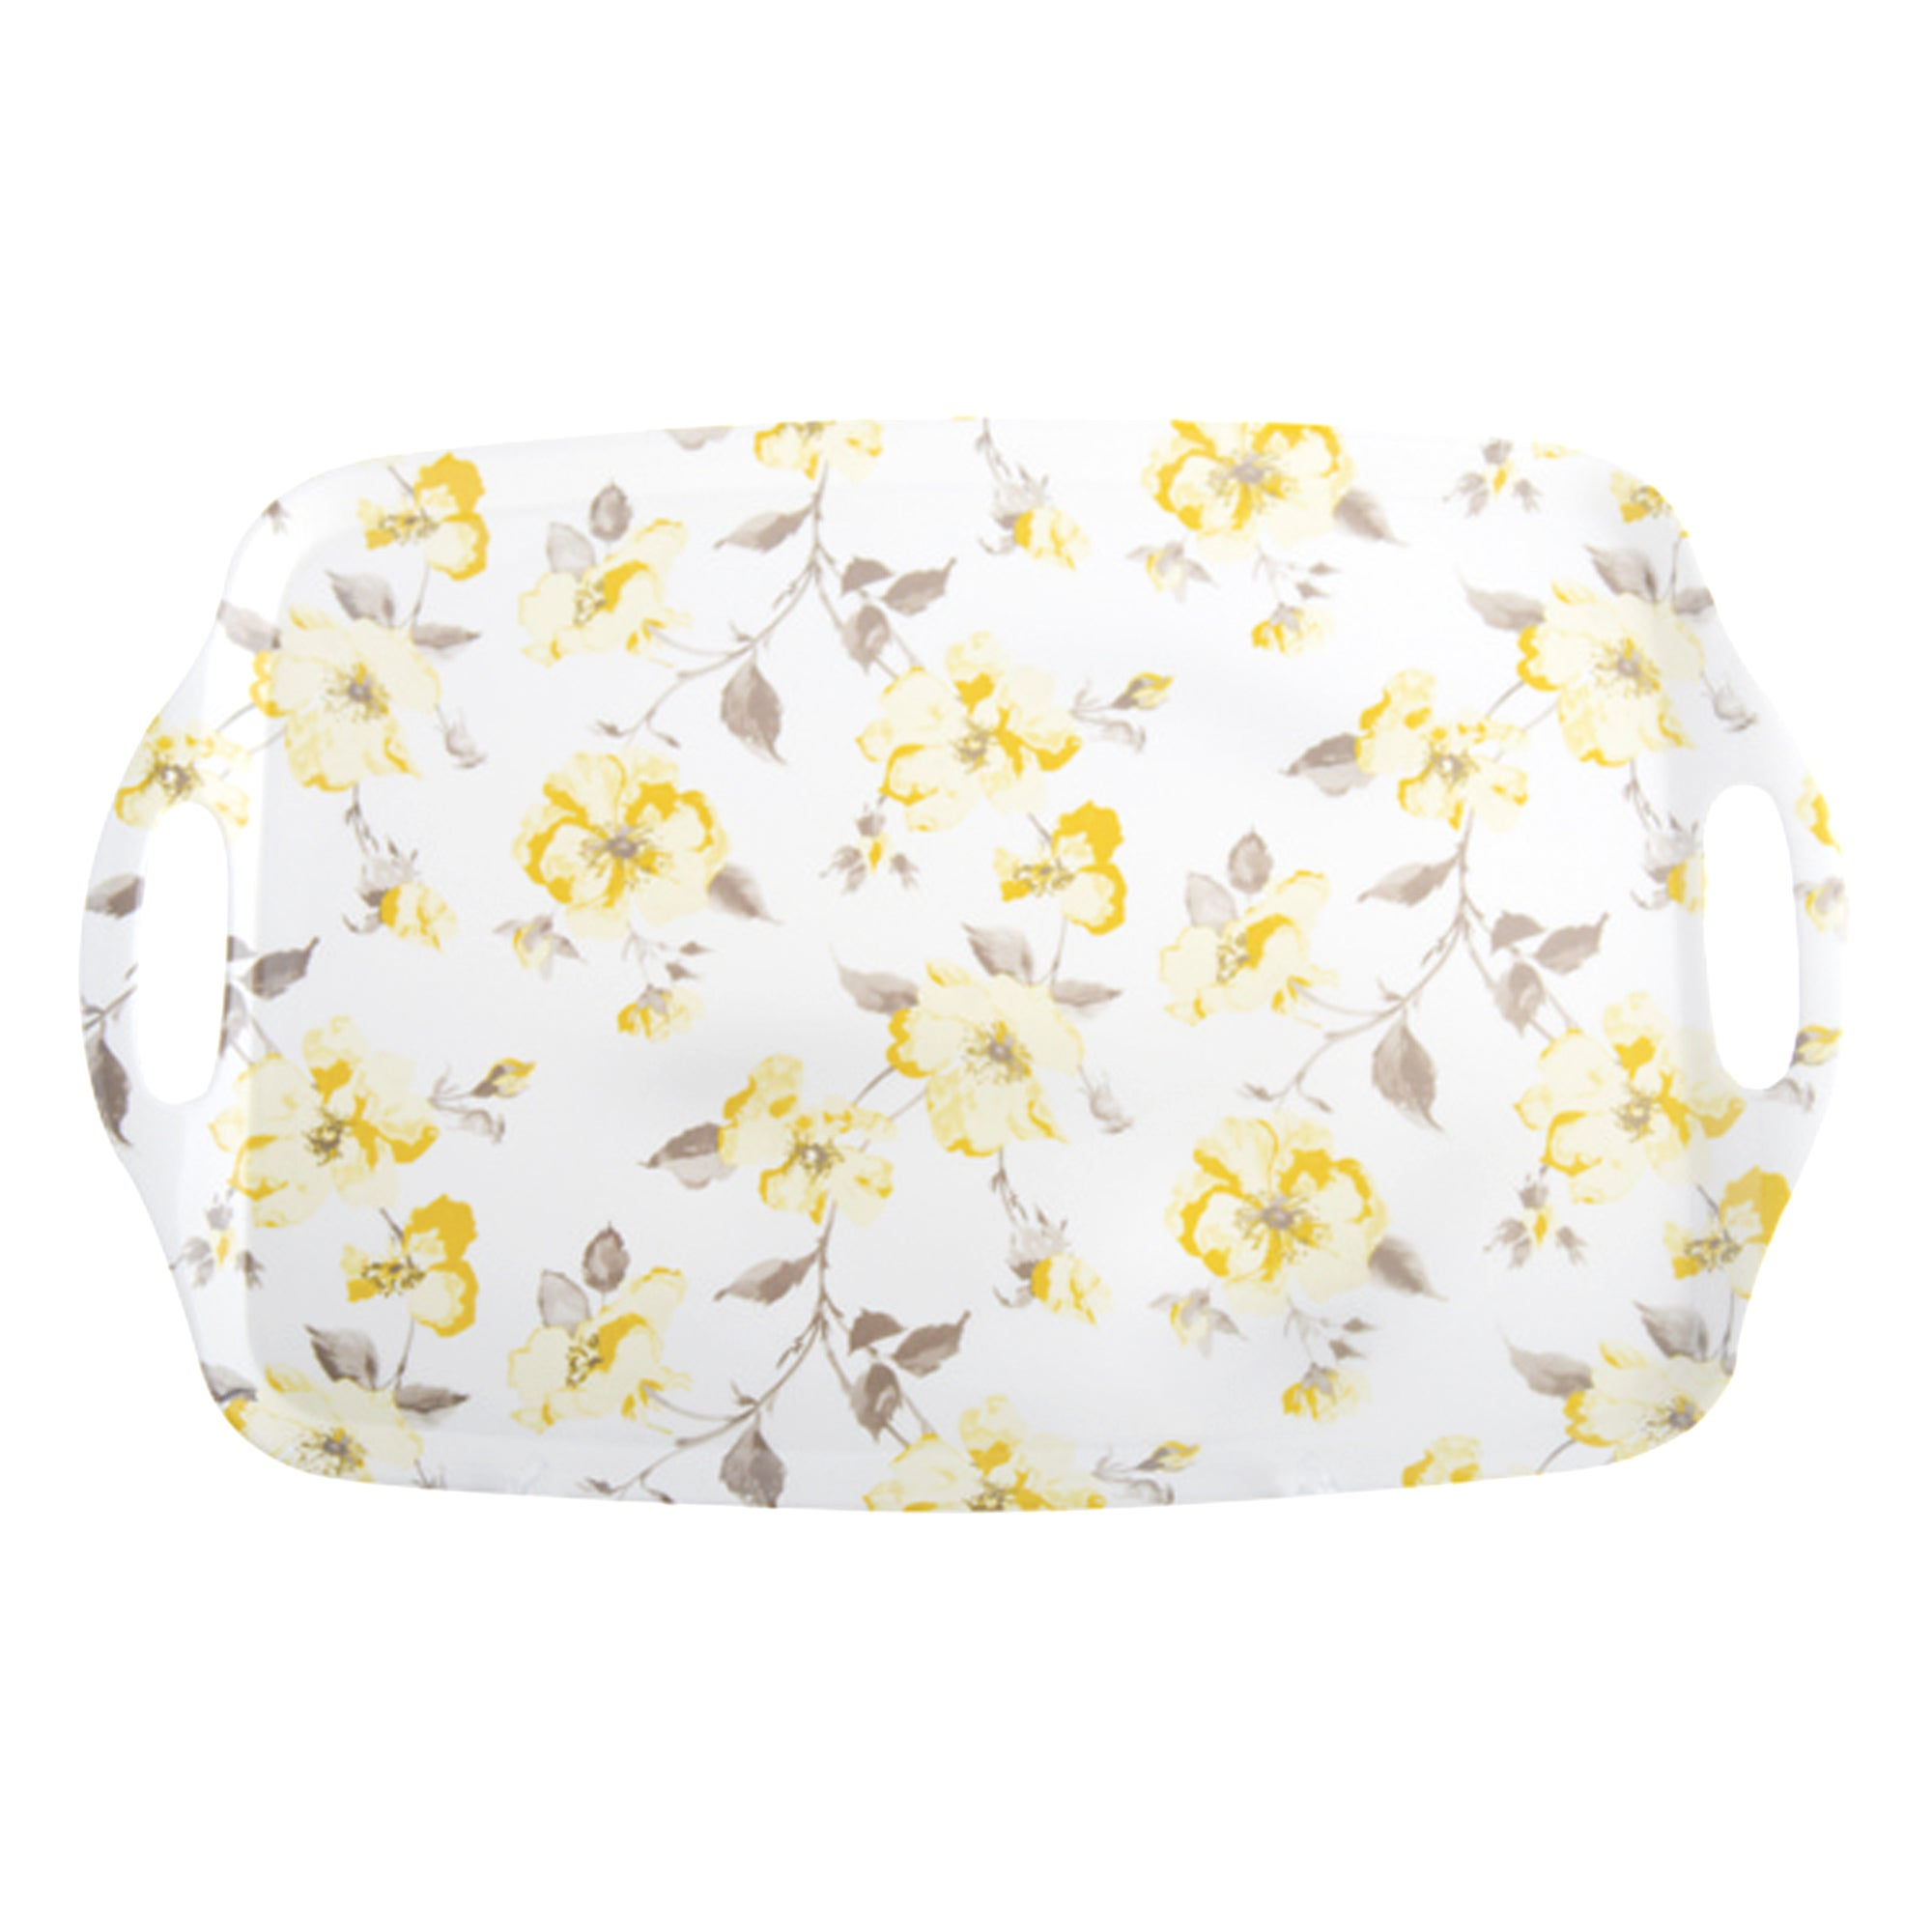 Meadow Blossom Collection Large Tray